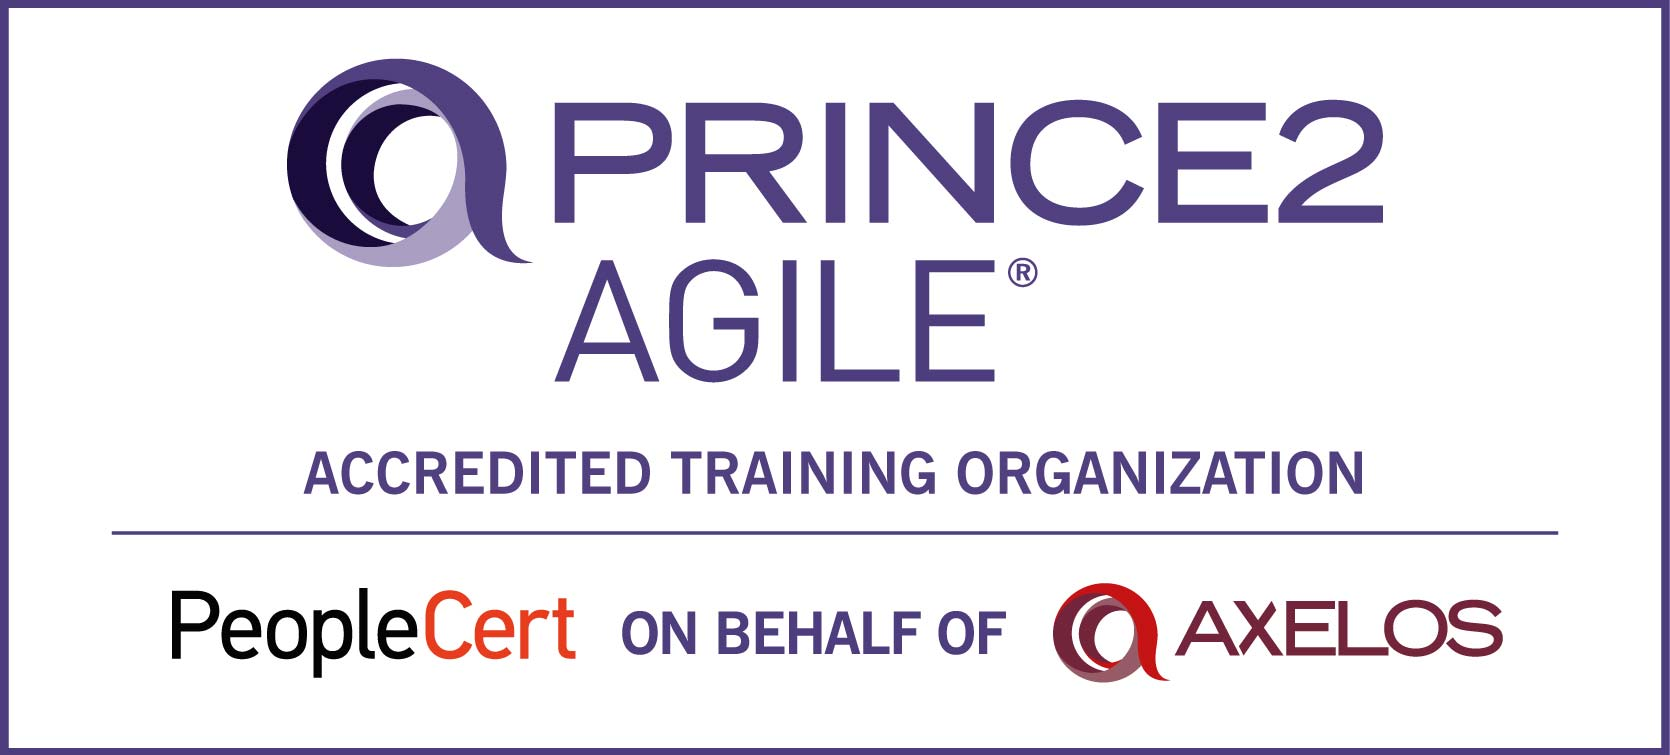 PRINCE2 Agile® Downloads